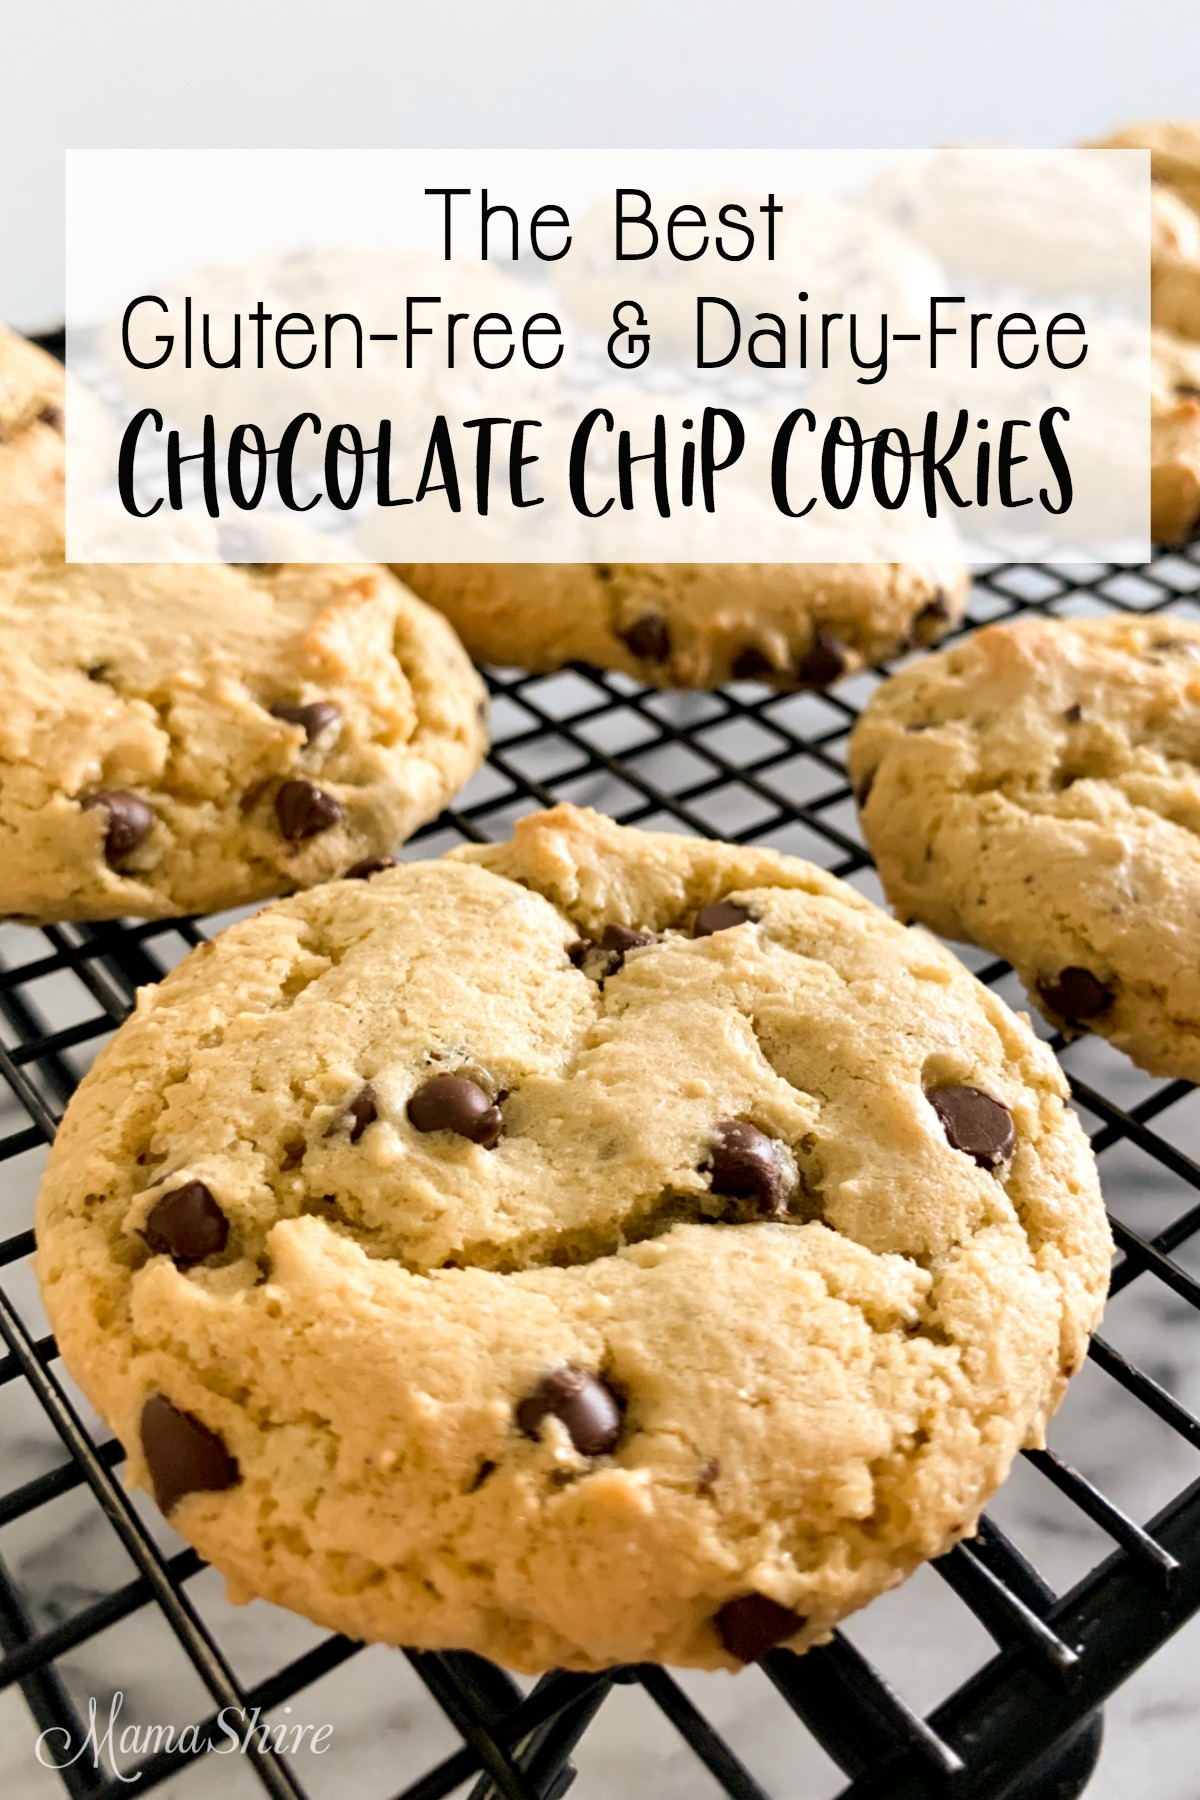 The best gluten-free and dairy-free chocolate chip cookies.